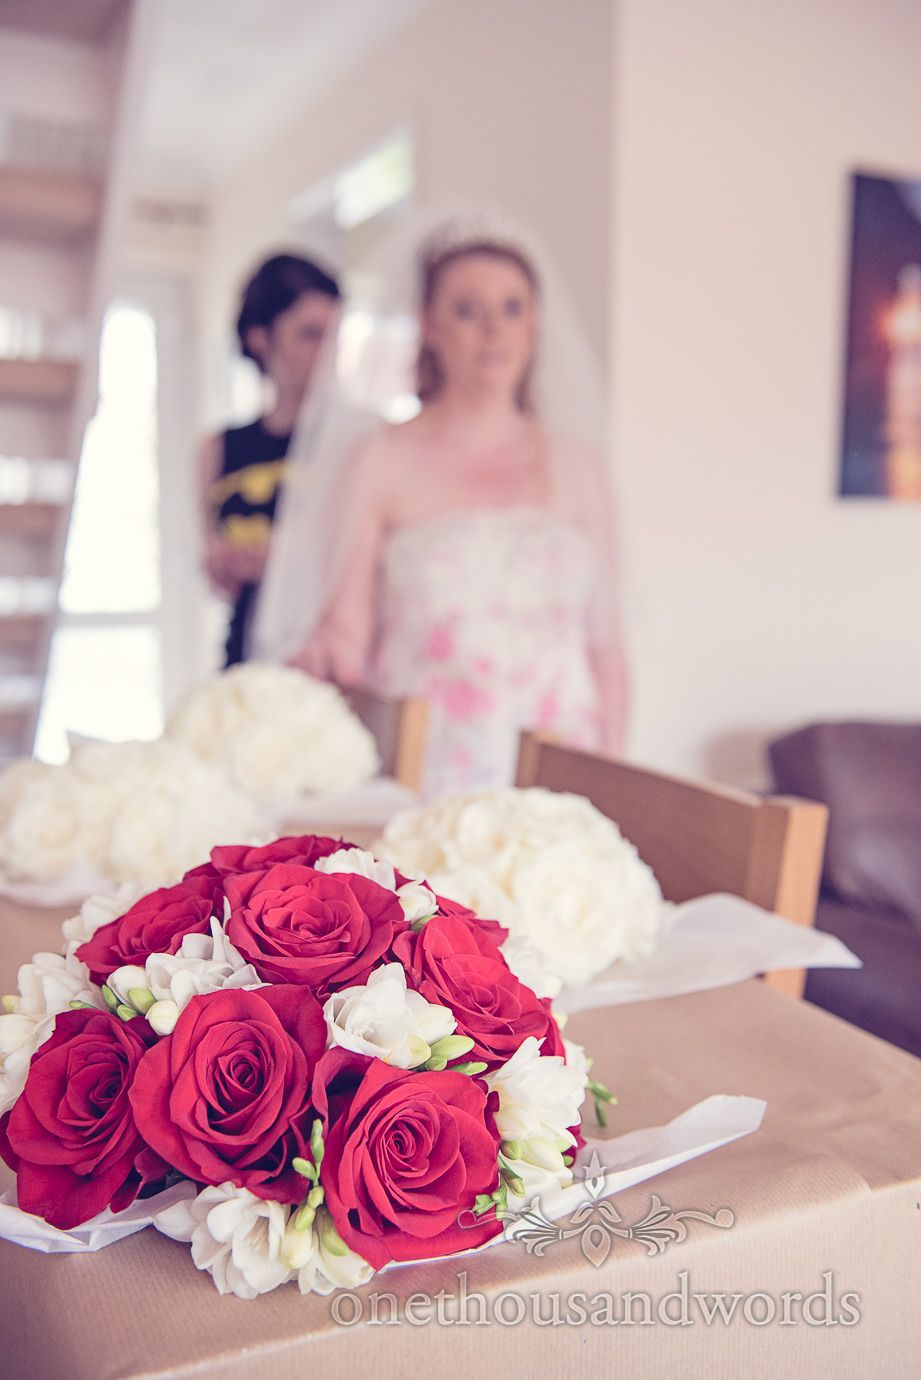 Red and white bridal bouquet from Simply Flower in Dorset. Photography by one thousand words wedding photographers